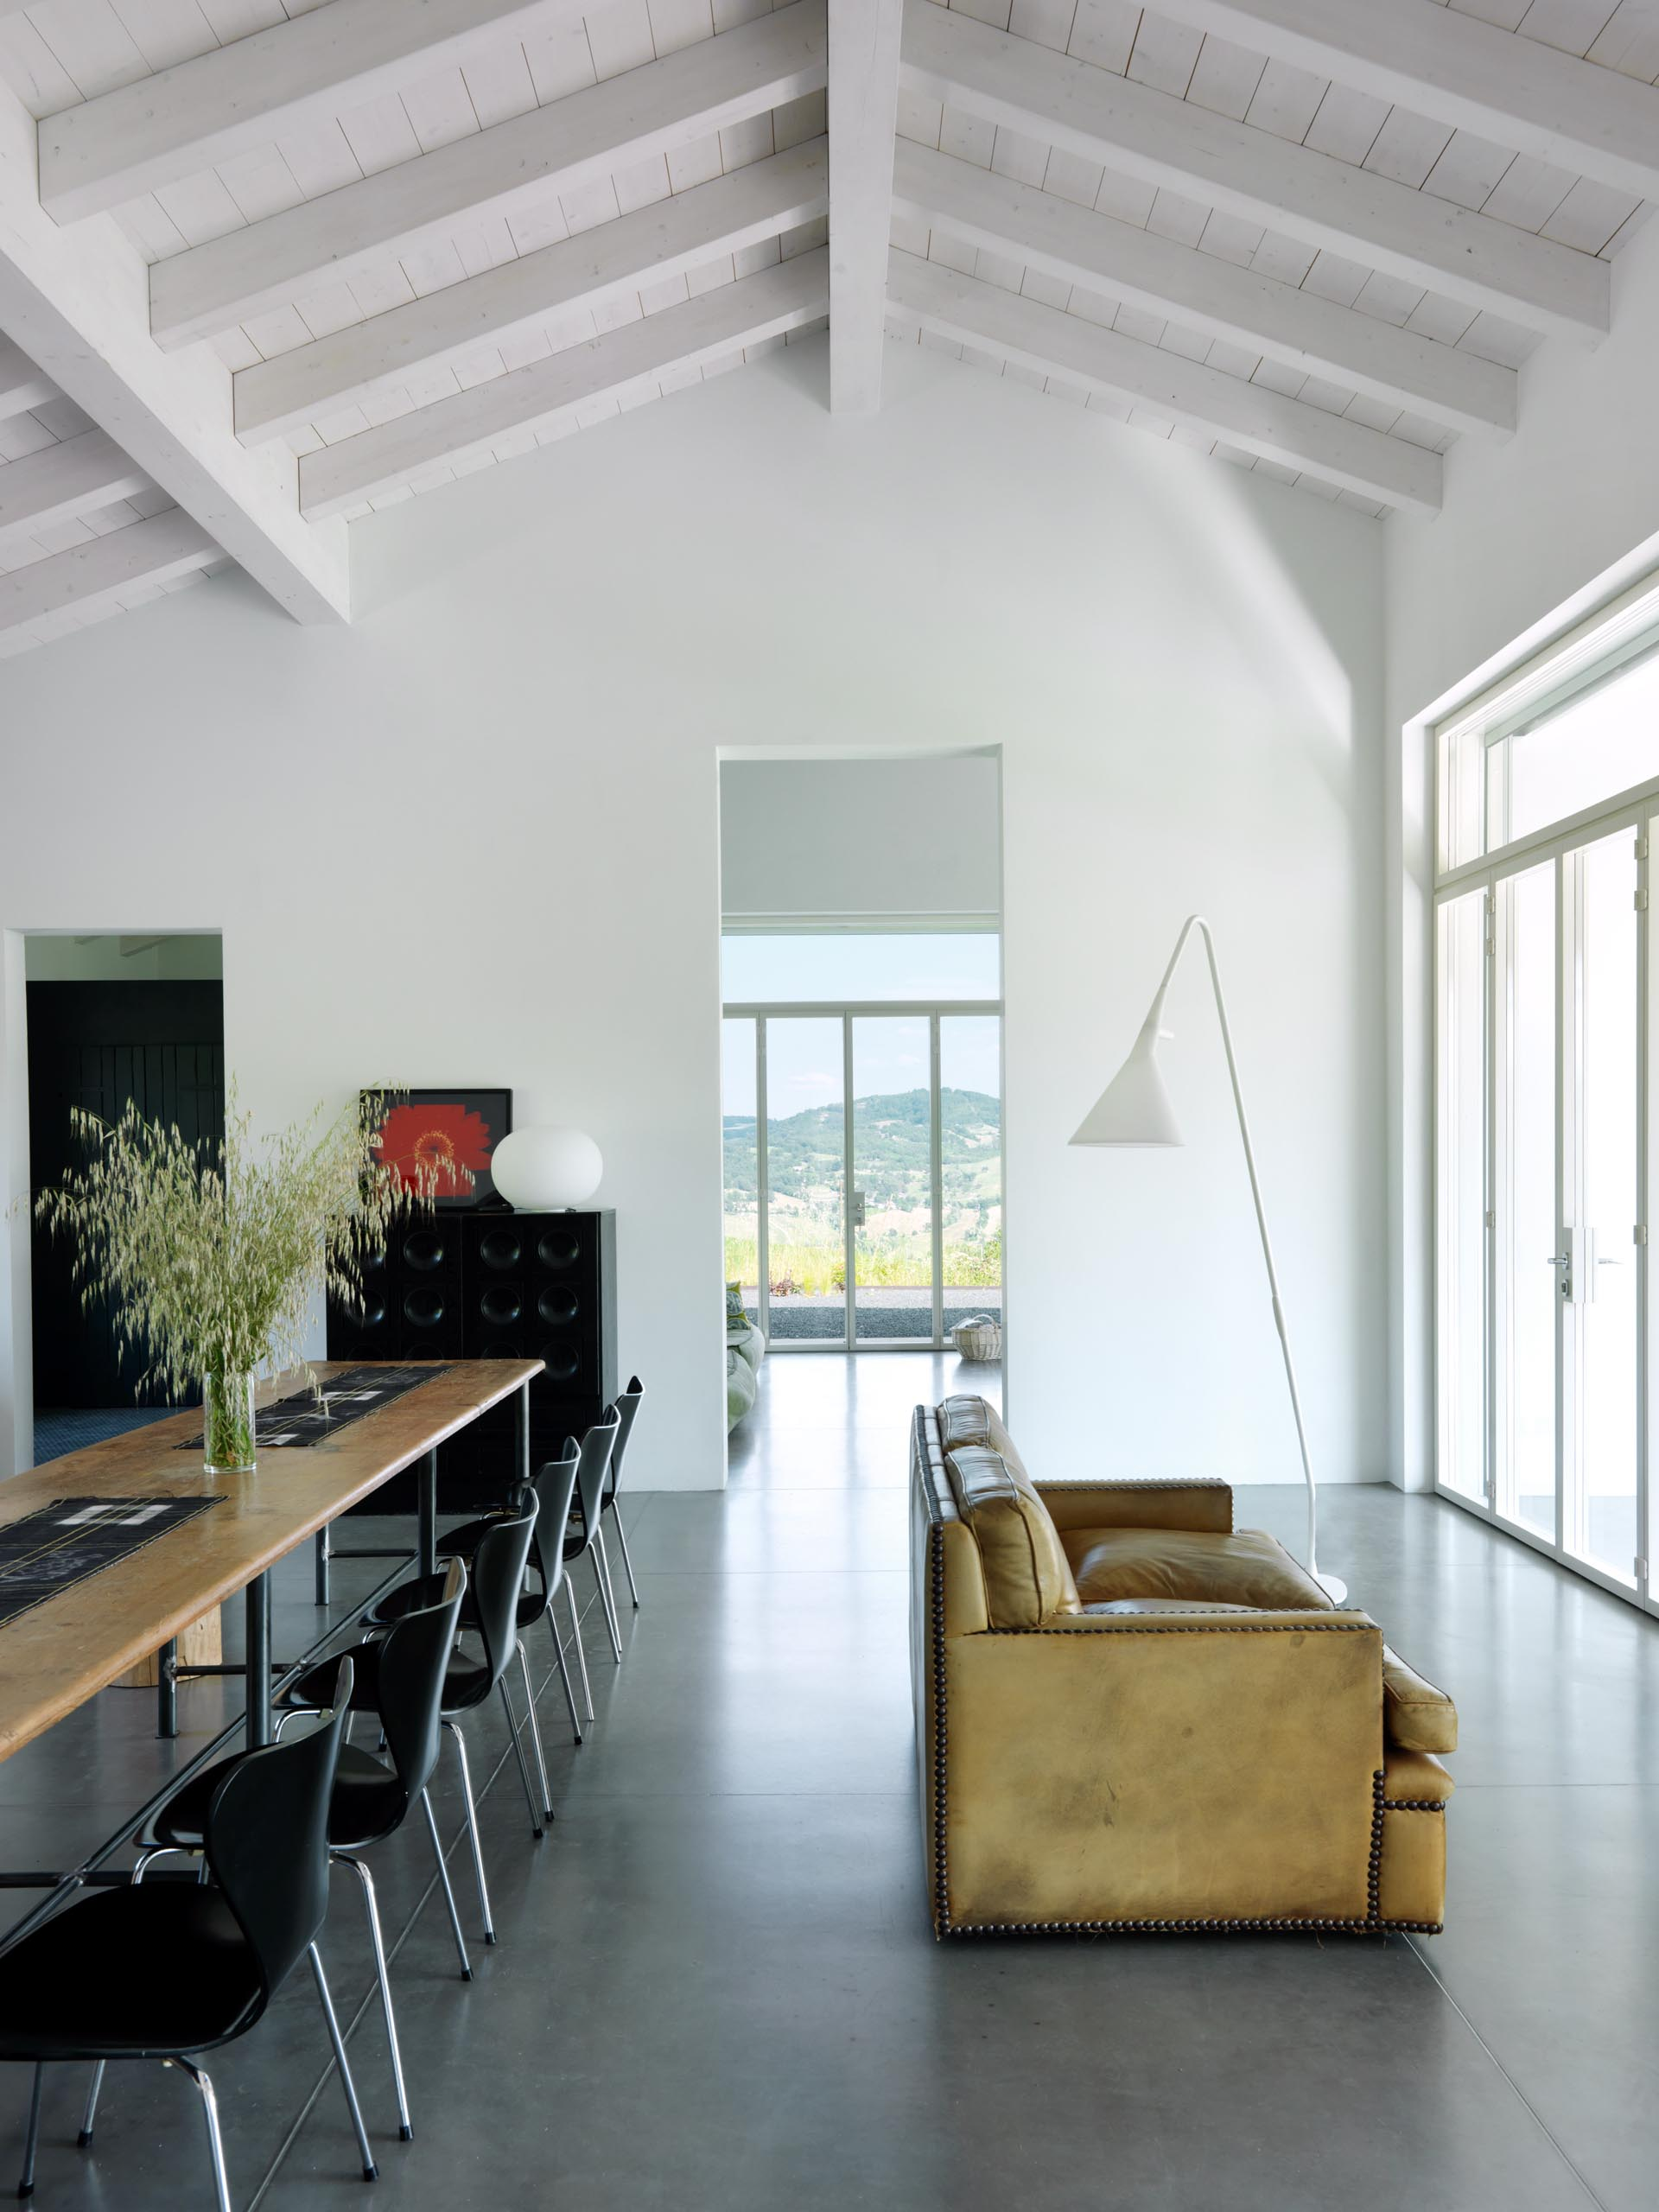 The internal walls and ceilings of this modern farmhouse have been finished with a white lime tempera.